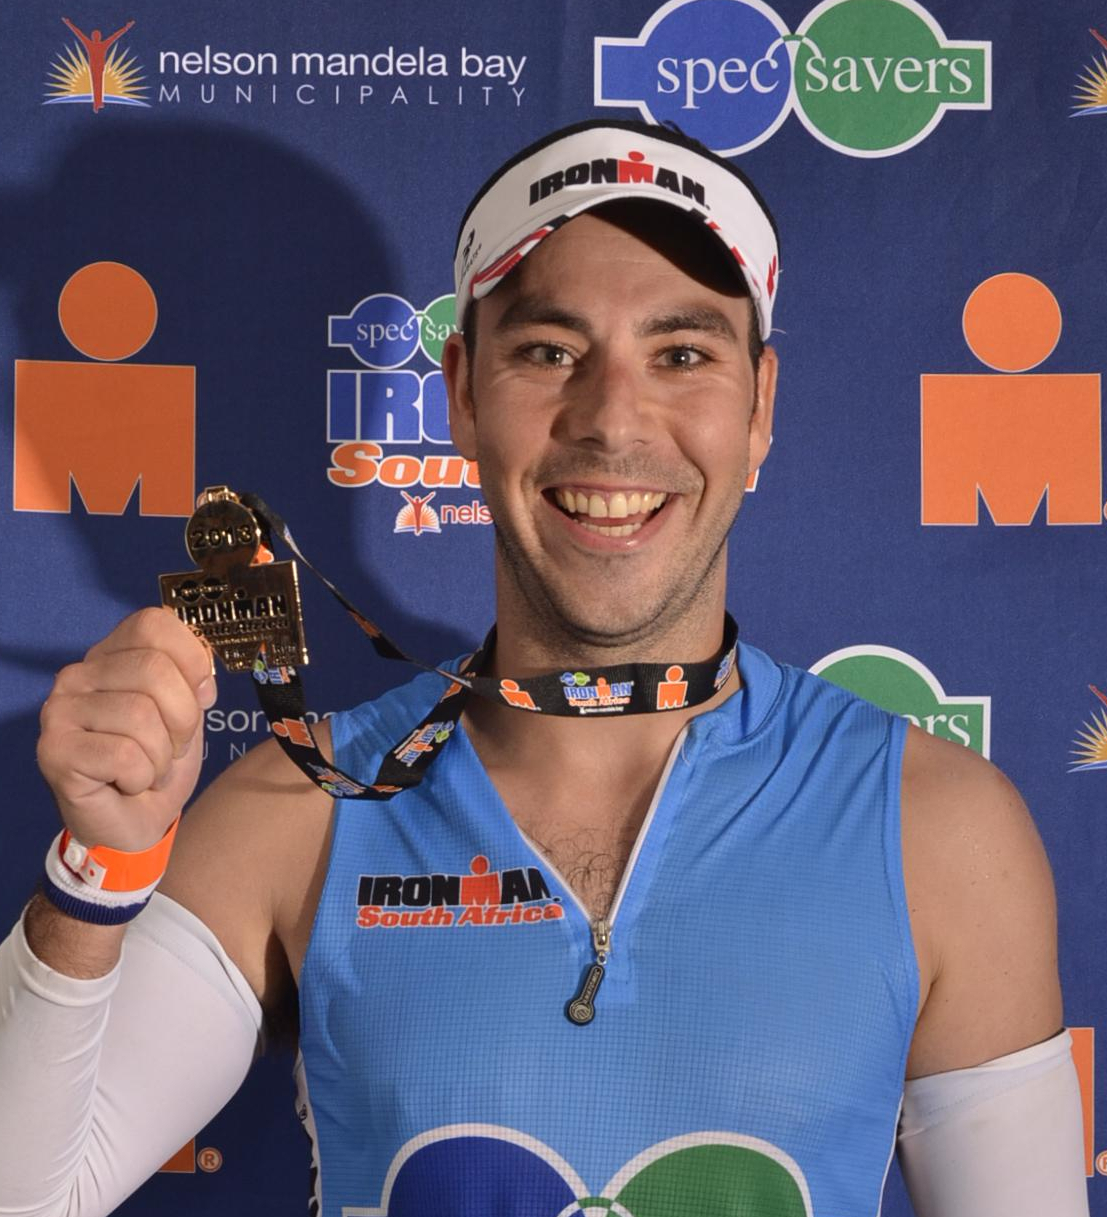 Jonathan's Ironman for the Smile Foundation